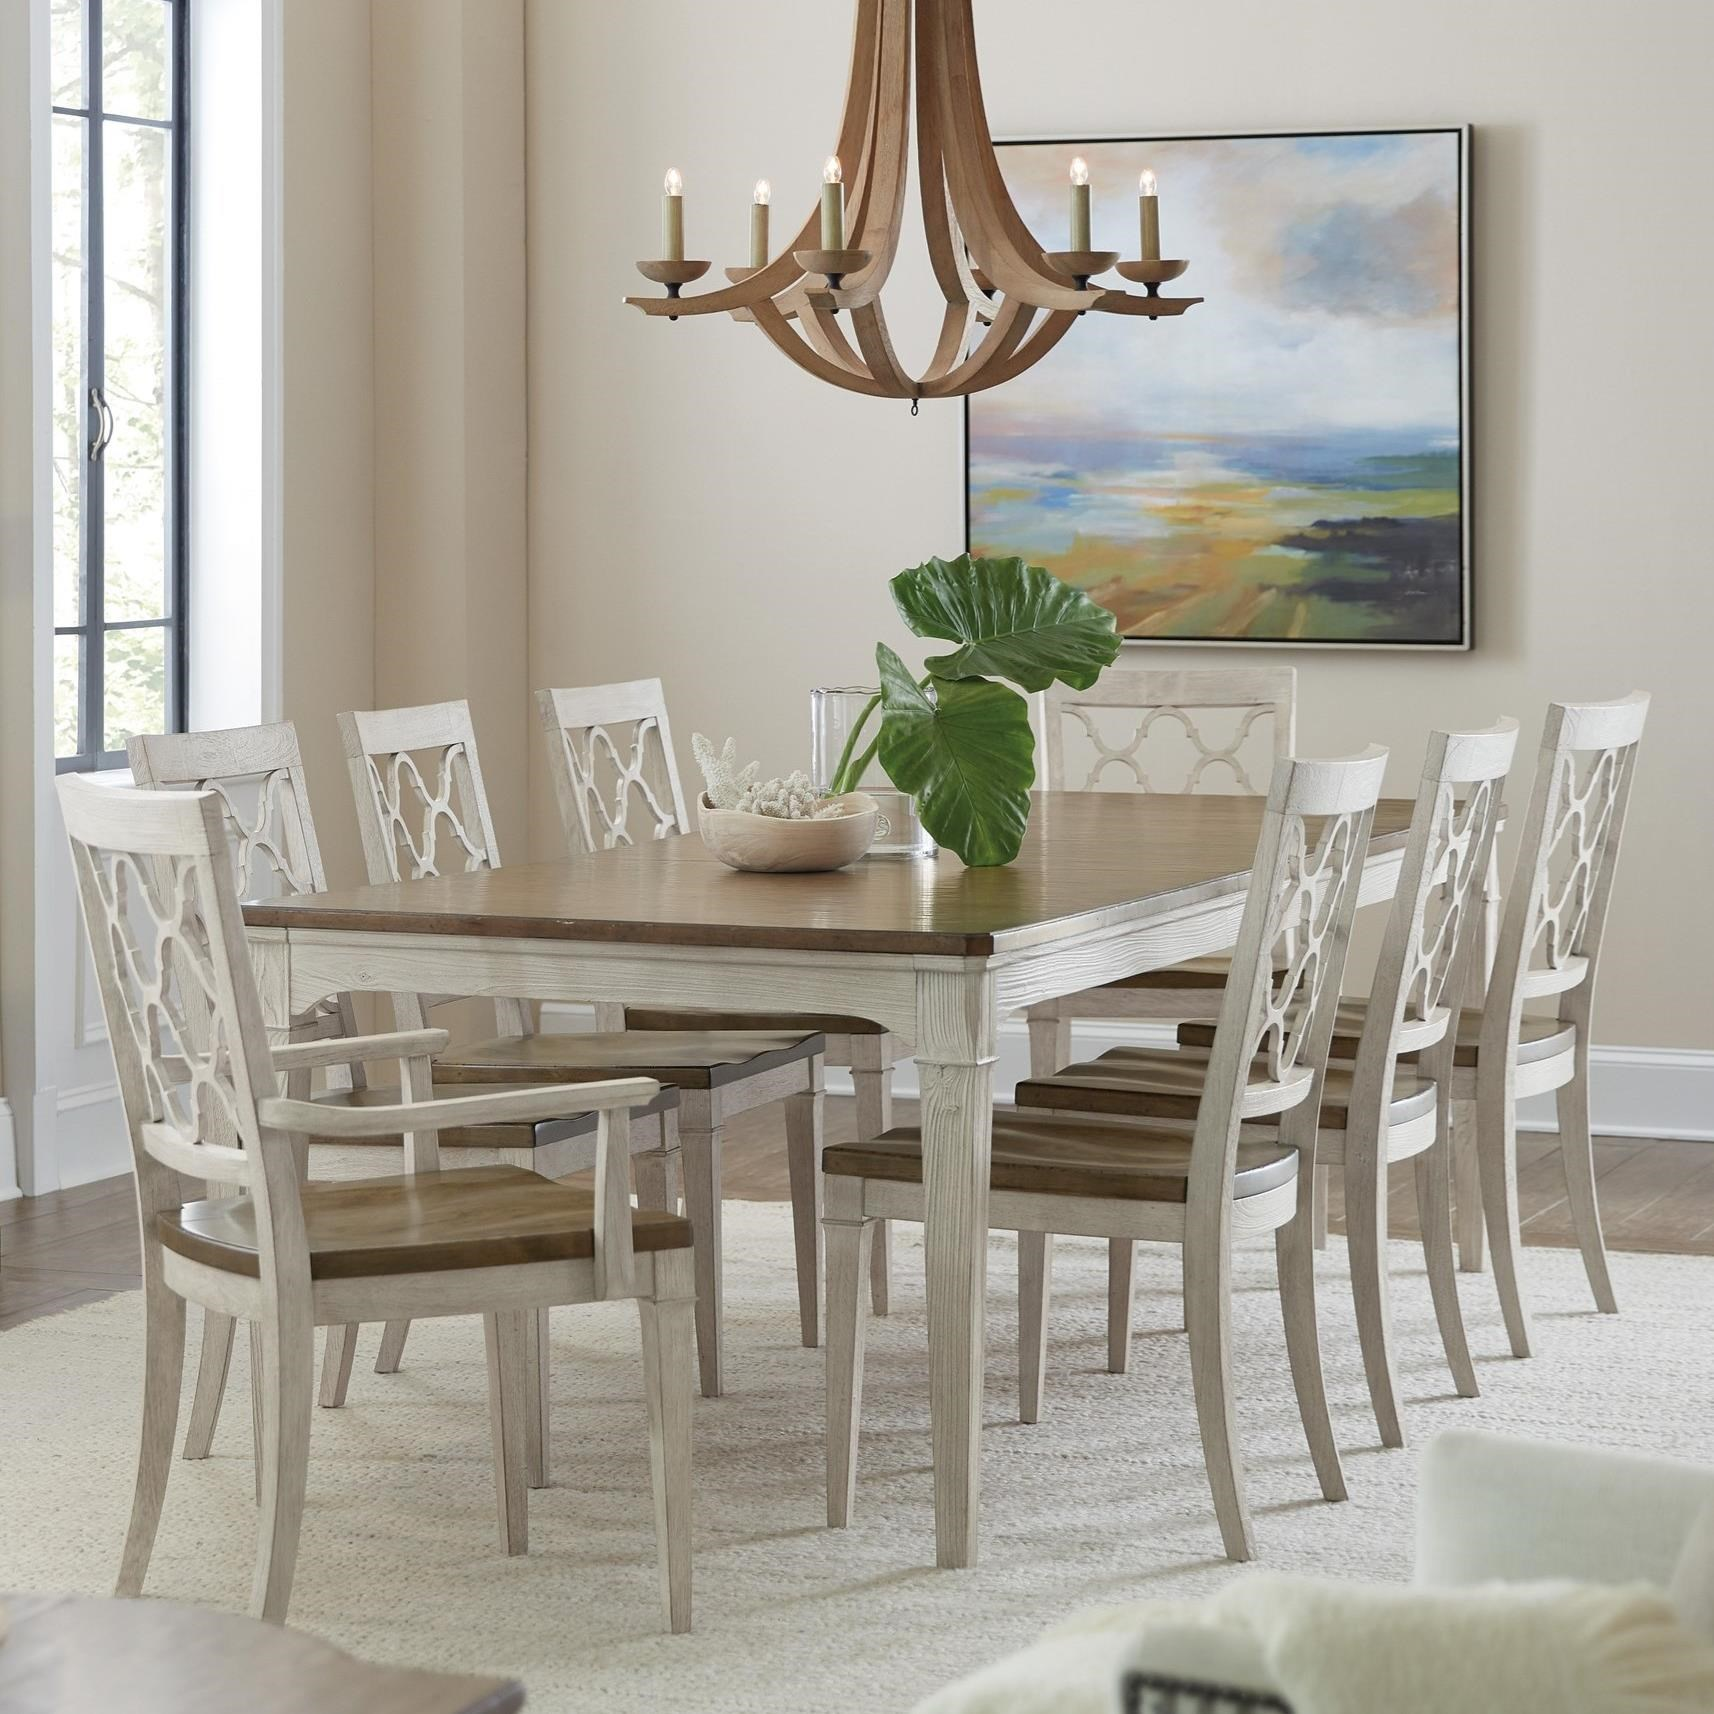 Hooker Furniture Montebello 9 Piece Dining Set With 82 Inch Rectangular Table Stoney Creek Furniture Dining 7 Or More Piece Sets